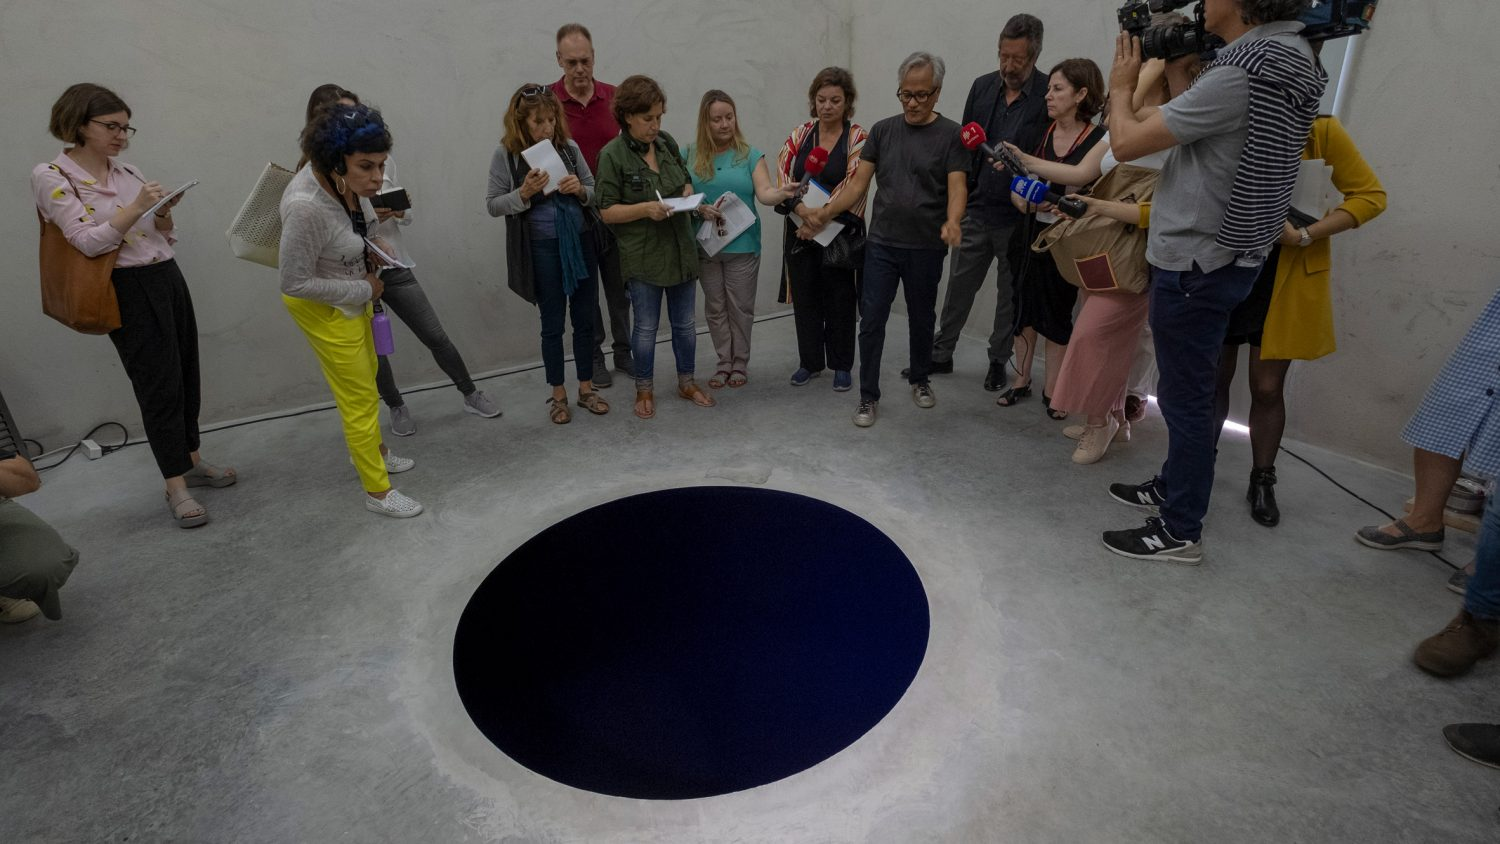 a man fell into an art installation called descent into limbo